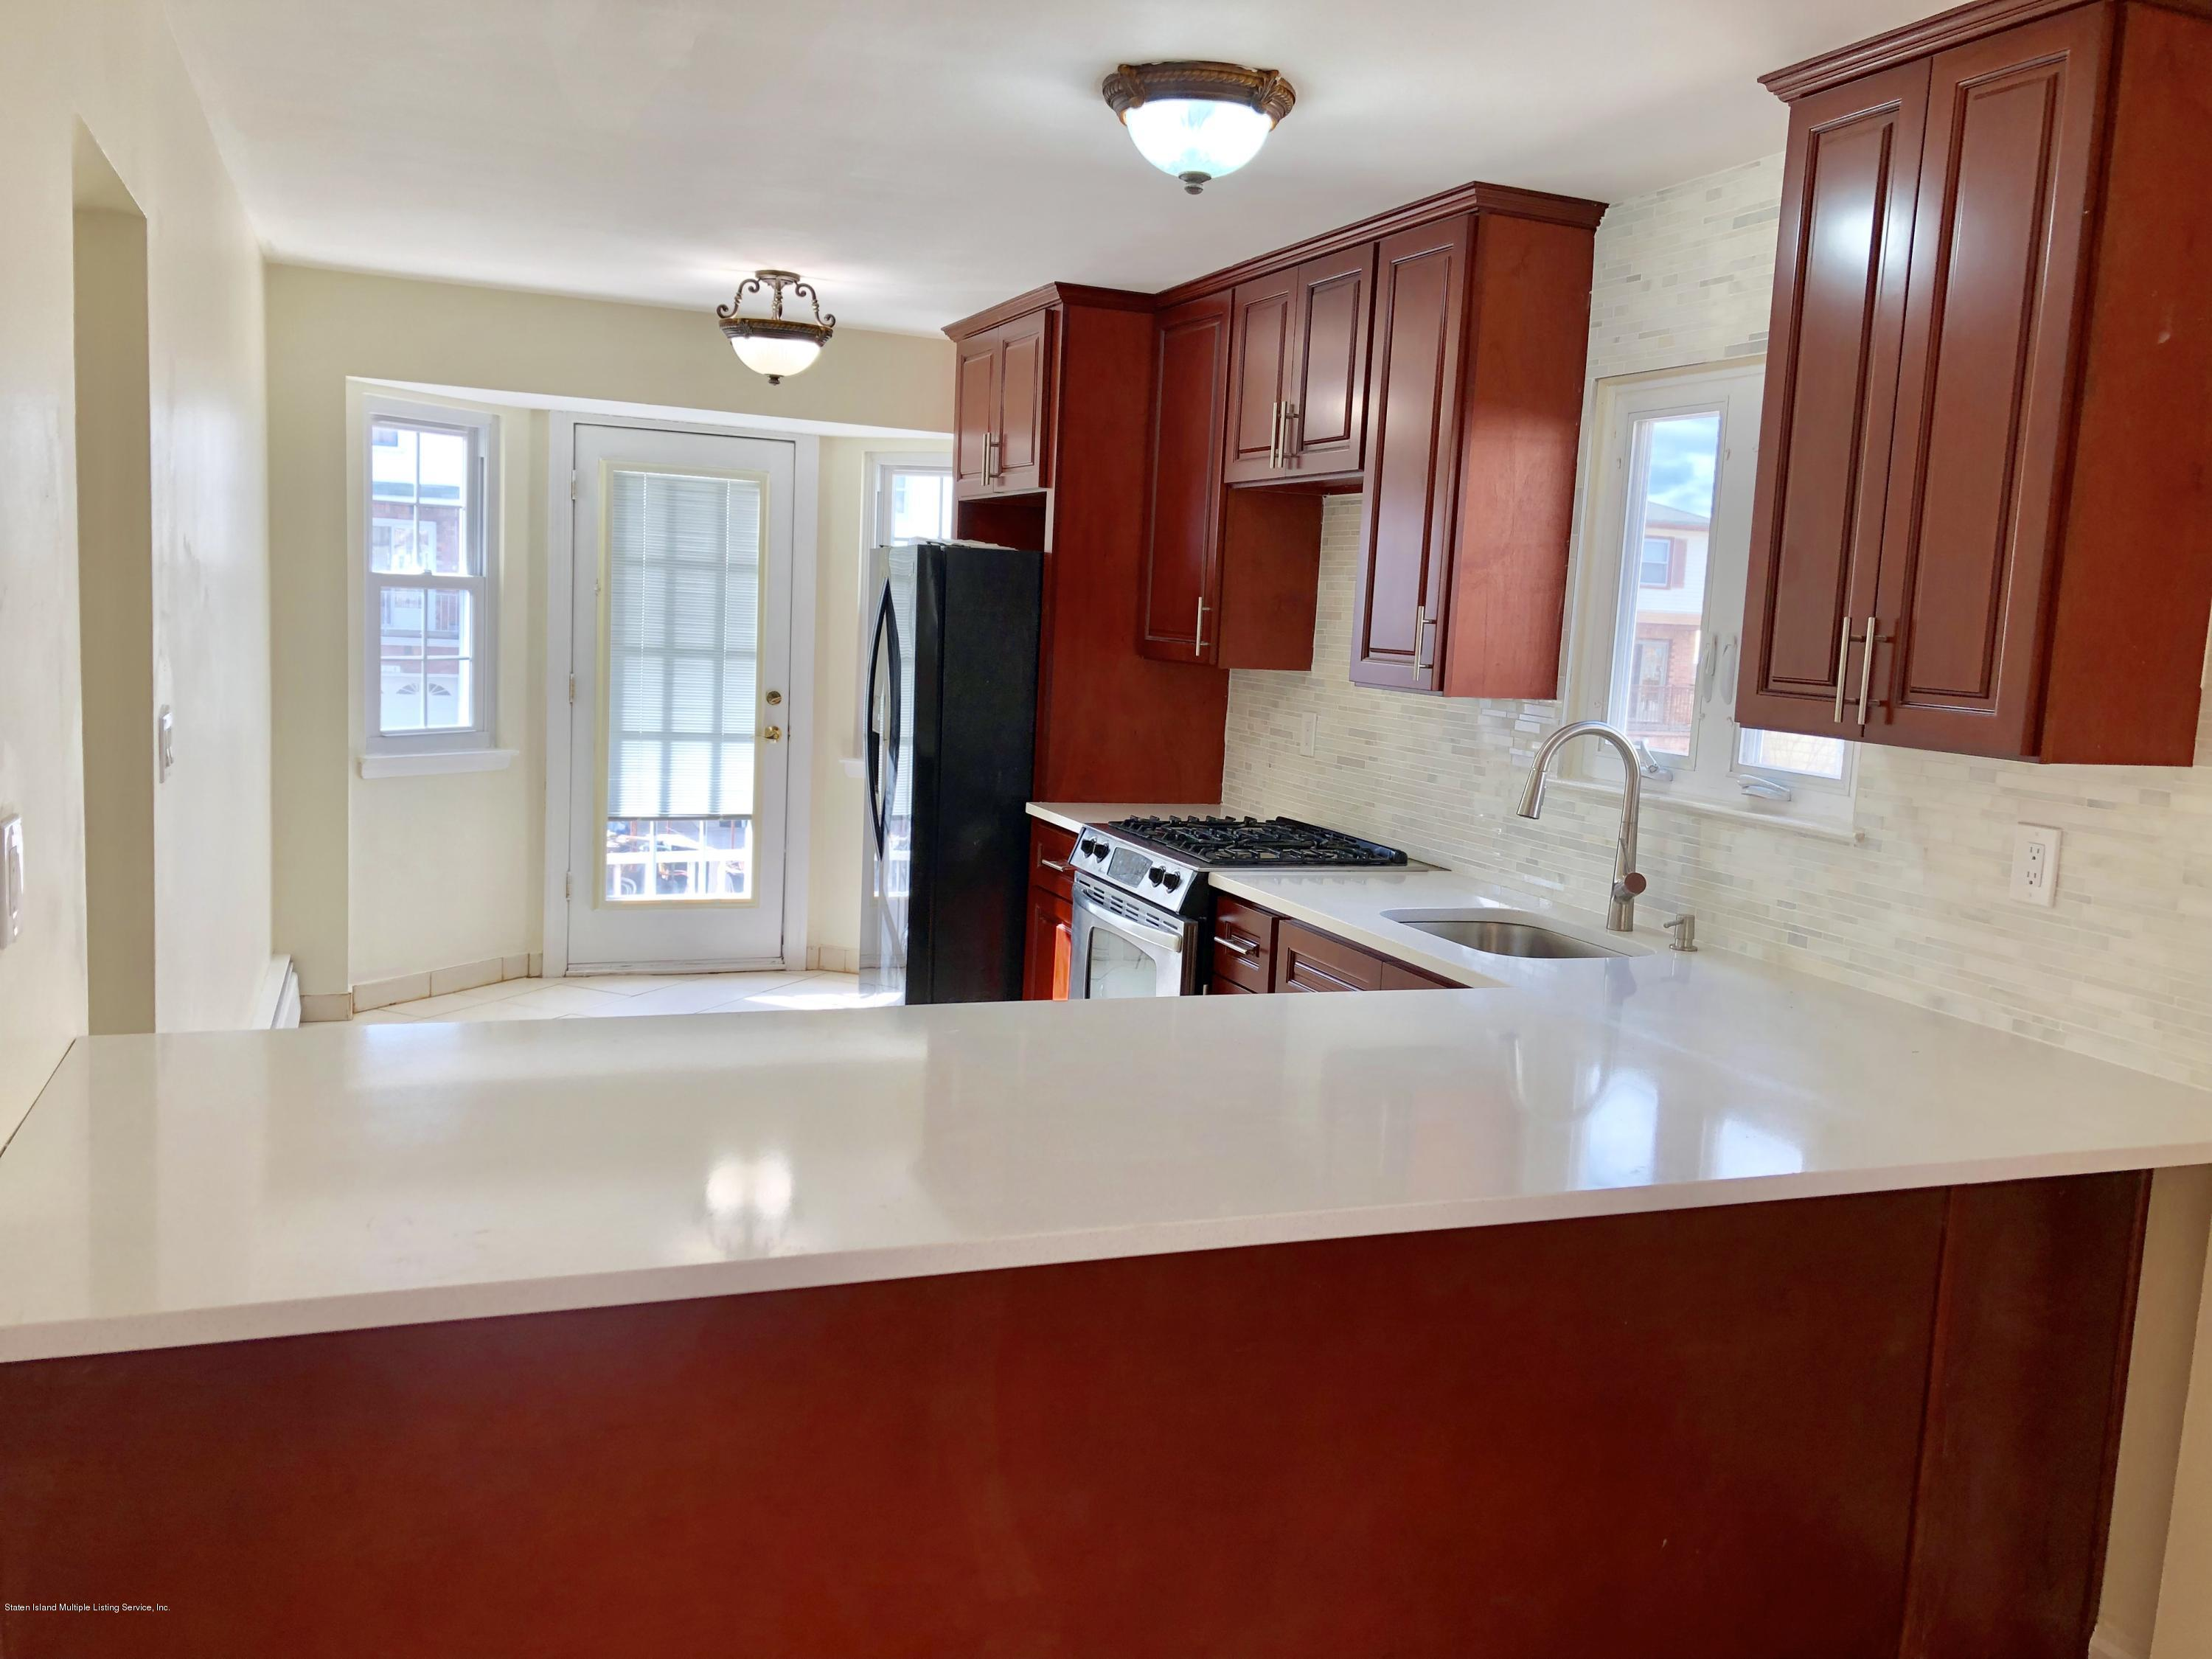 Single Family - Semi-Attached 205 Mcveigh Avenue  Staten Island, NY 10314, MLS-1123847-9